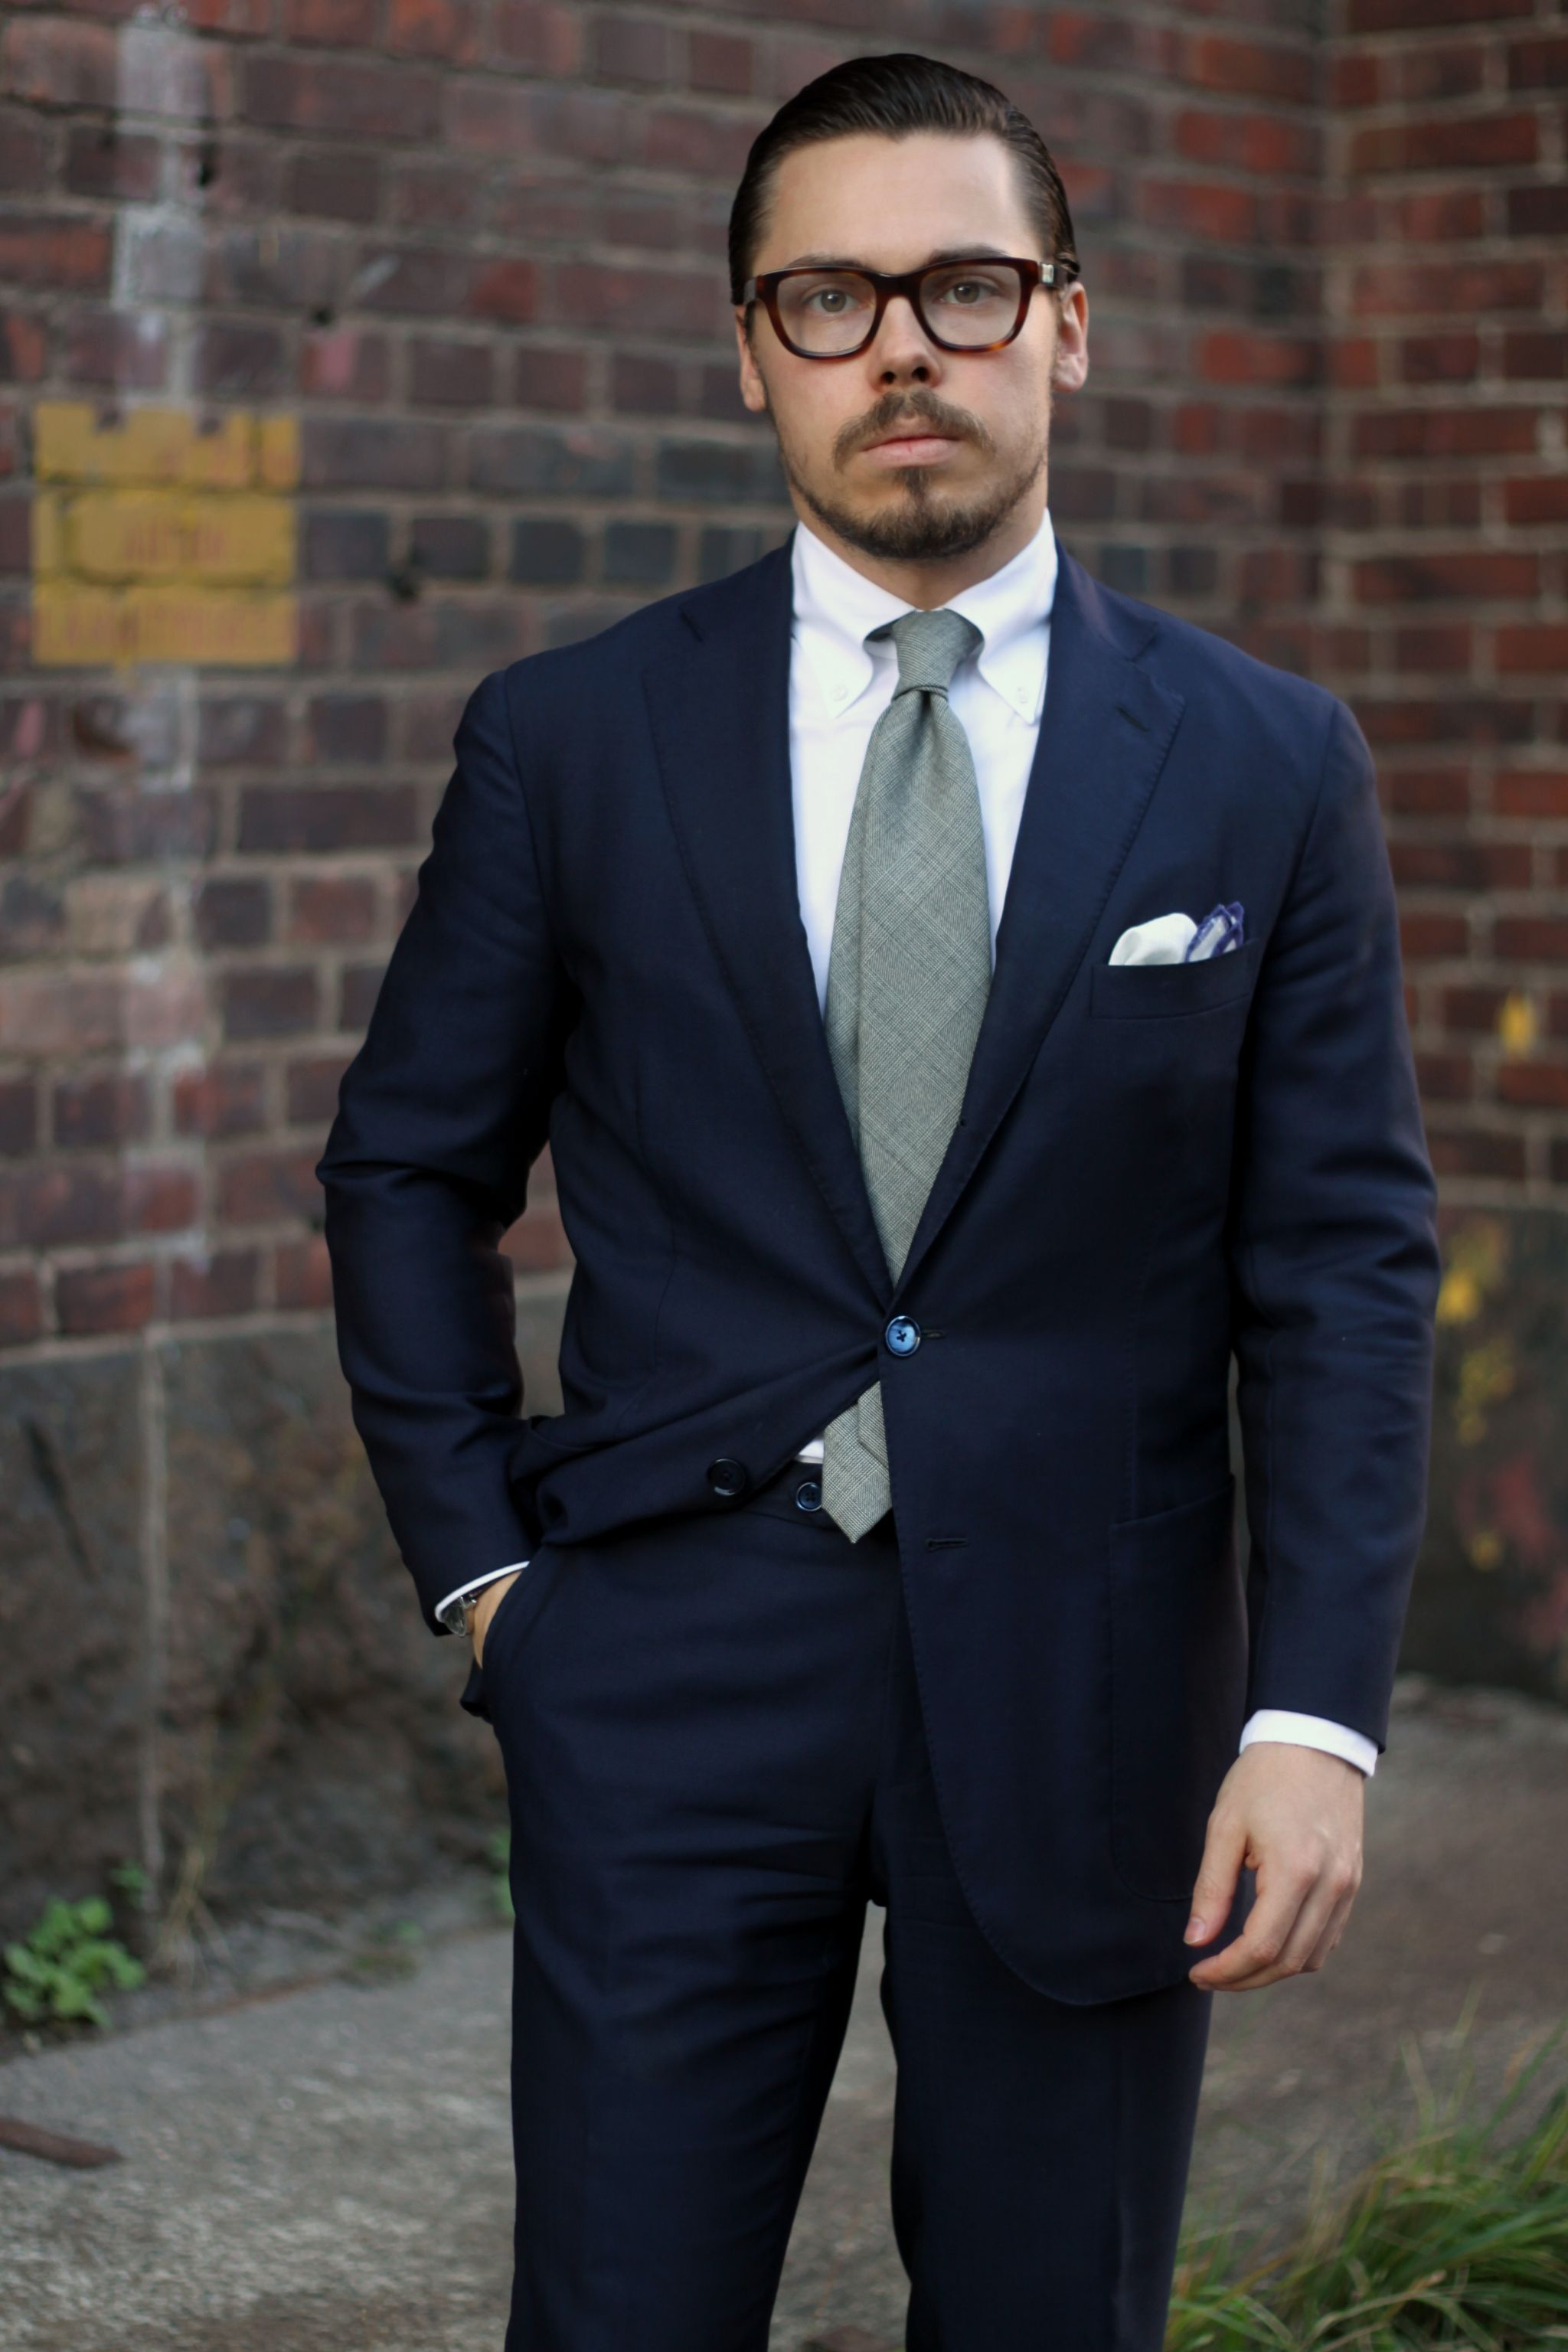 How to buy a business suit - Dark blue wool suit with gray tie